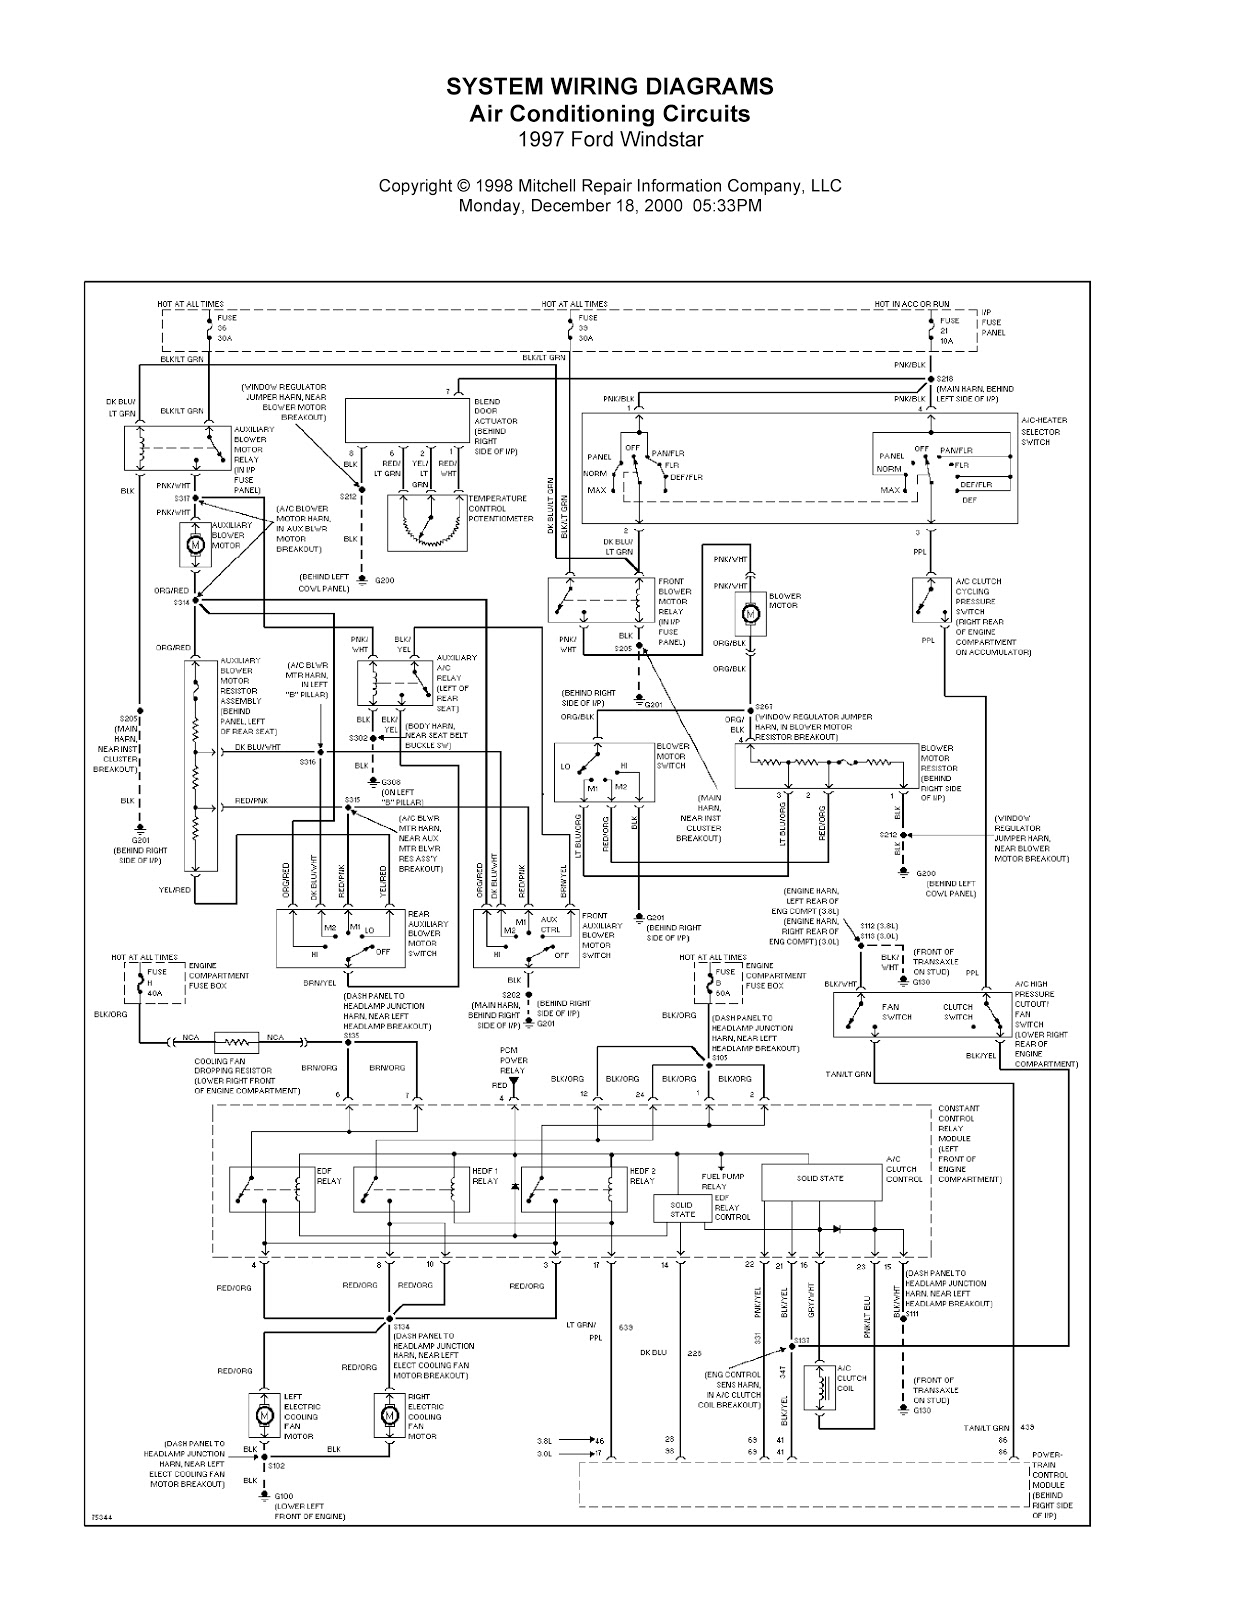 ford windstar complete system wiring diagrams wiring we provide you the clear and readable images this makes you easier to comprehend the whole parts in the schematic wiring diagram